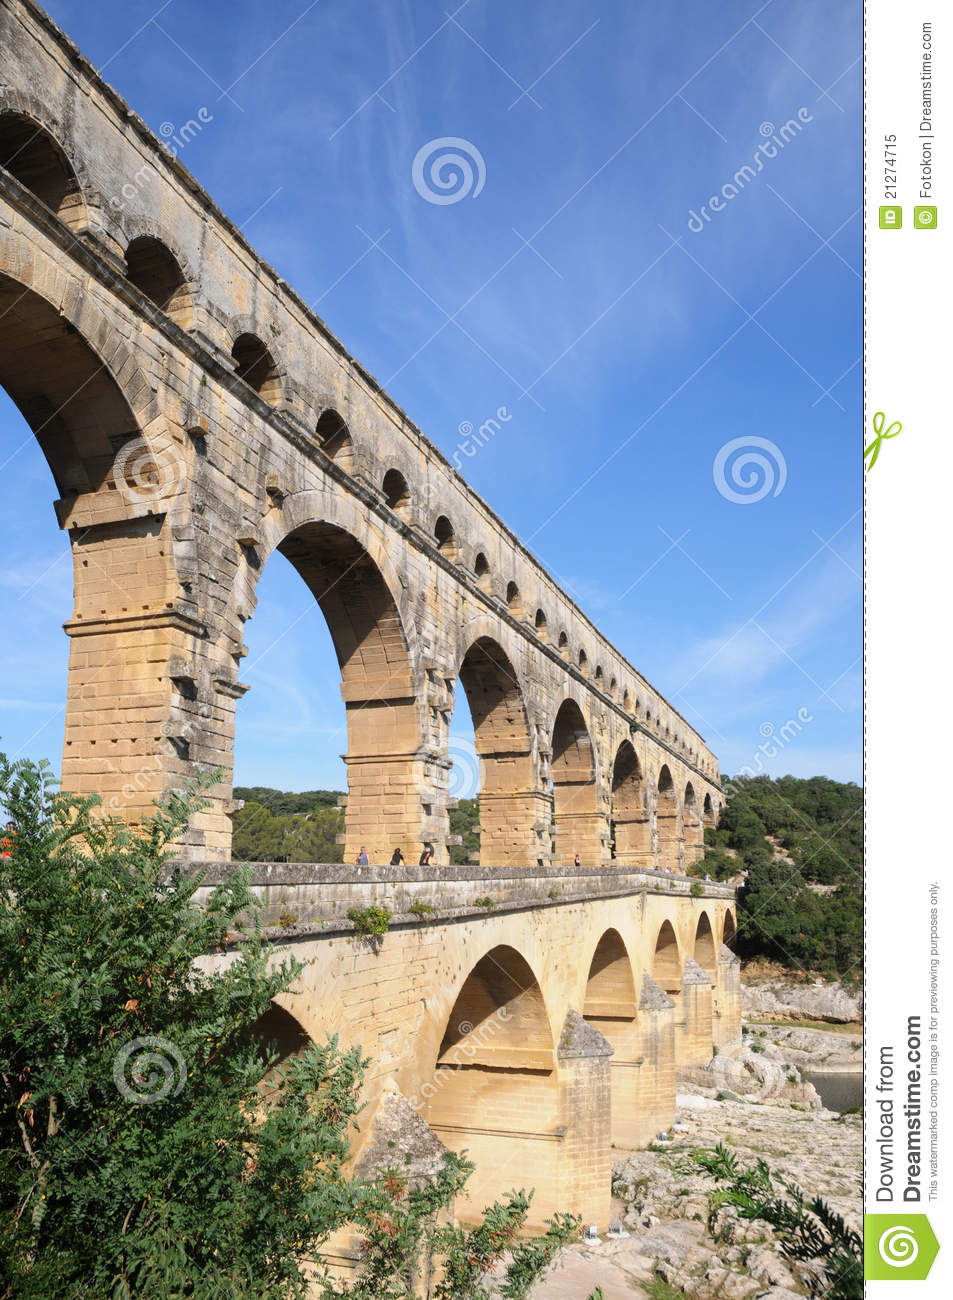 Aqueduct pont du gard in france stock image image of for Pont du gard architecte